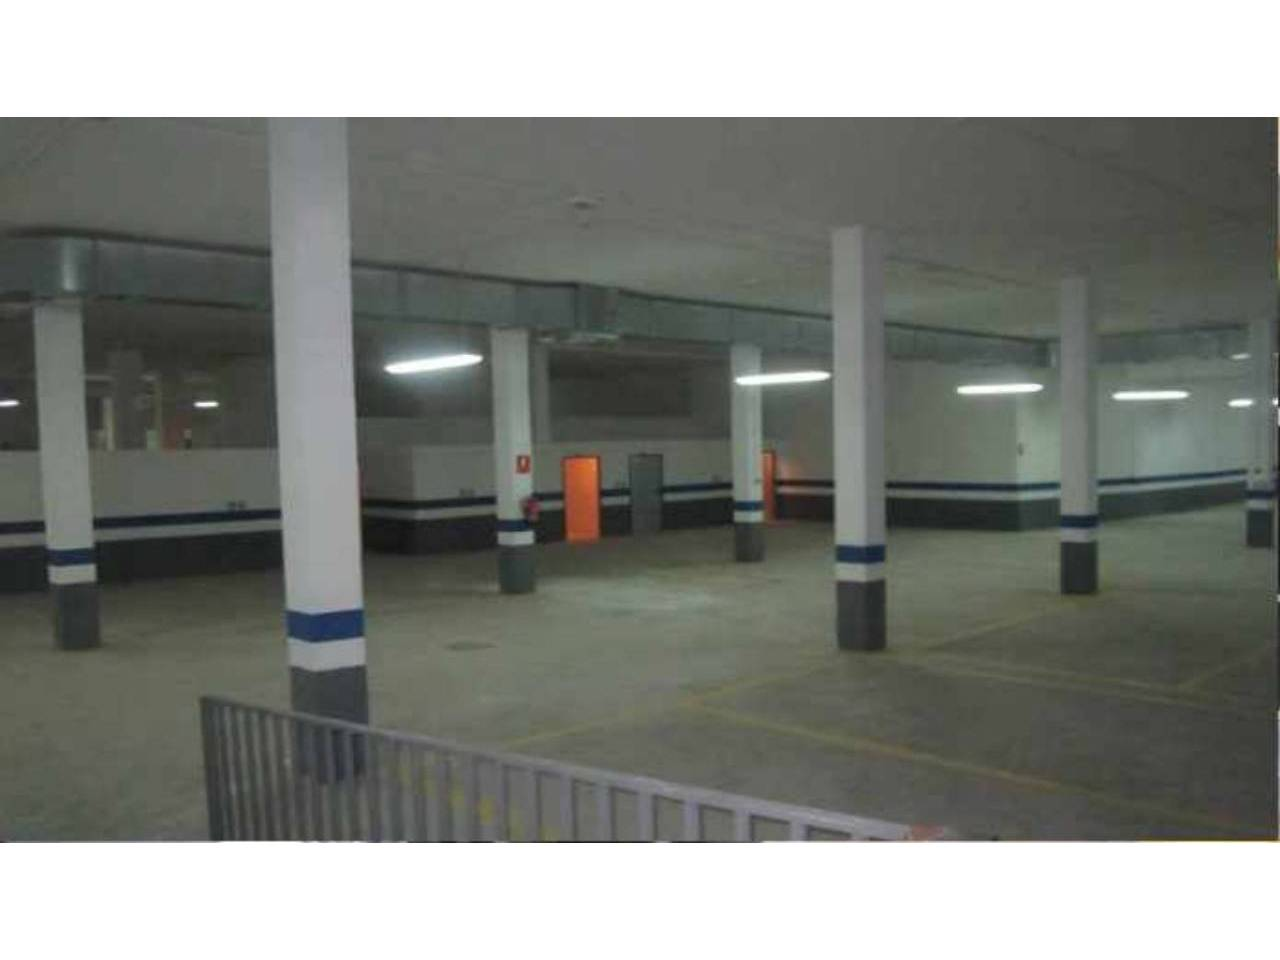 Parking voiture  Horteta. Superf. 20 m², 1 plazas.